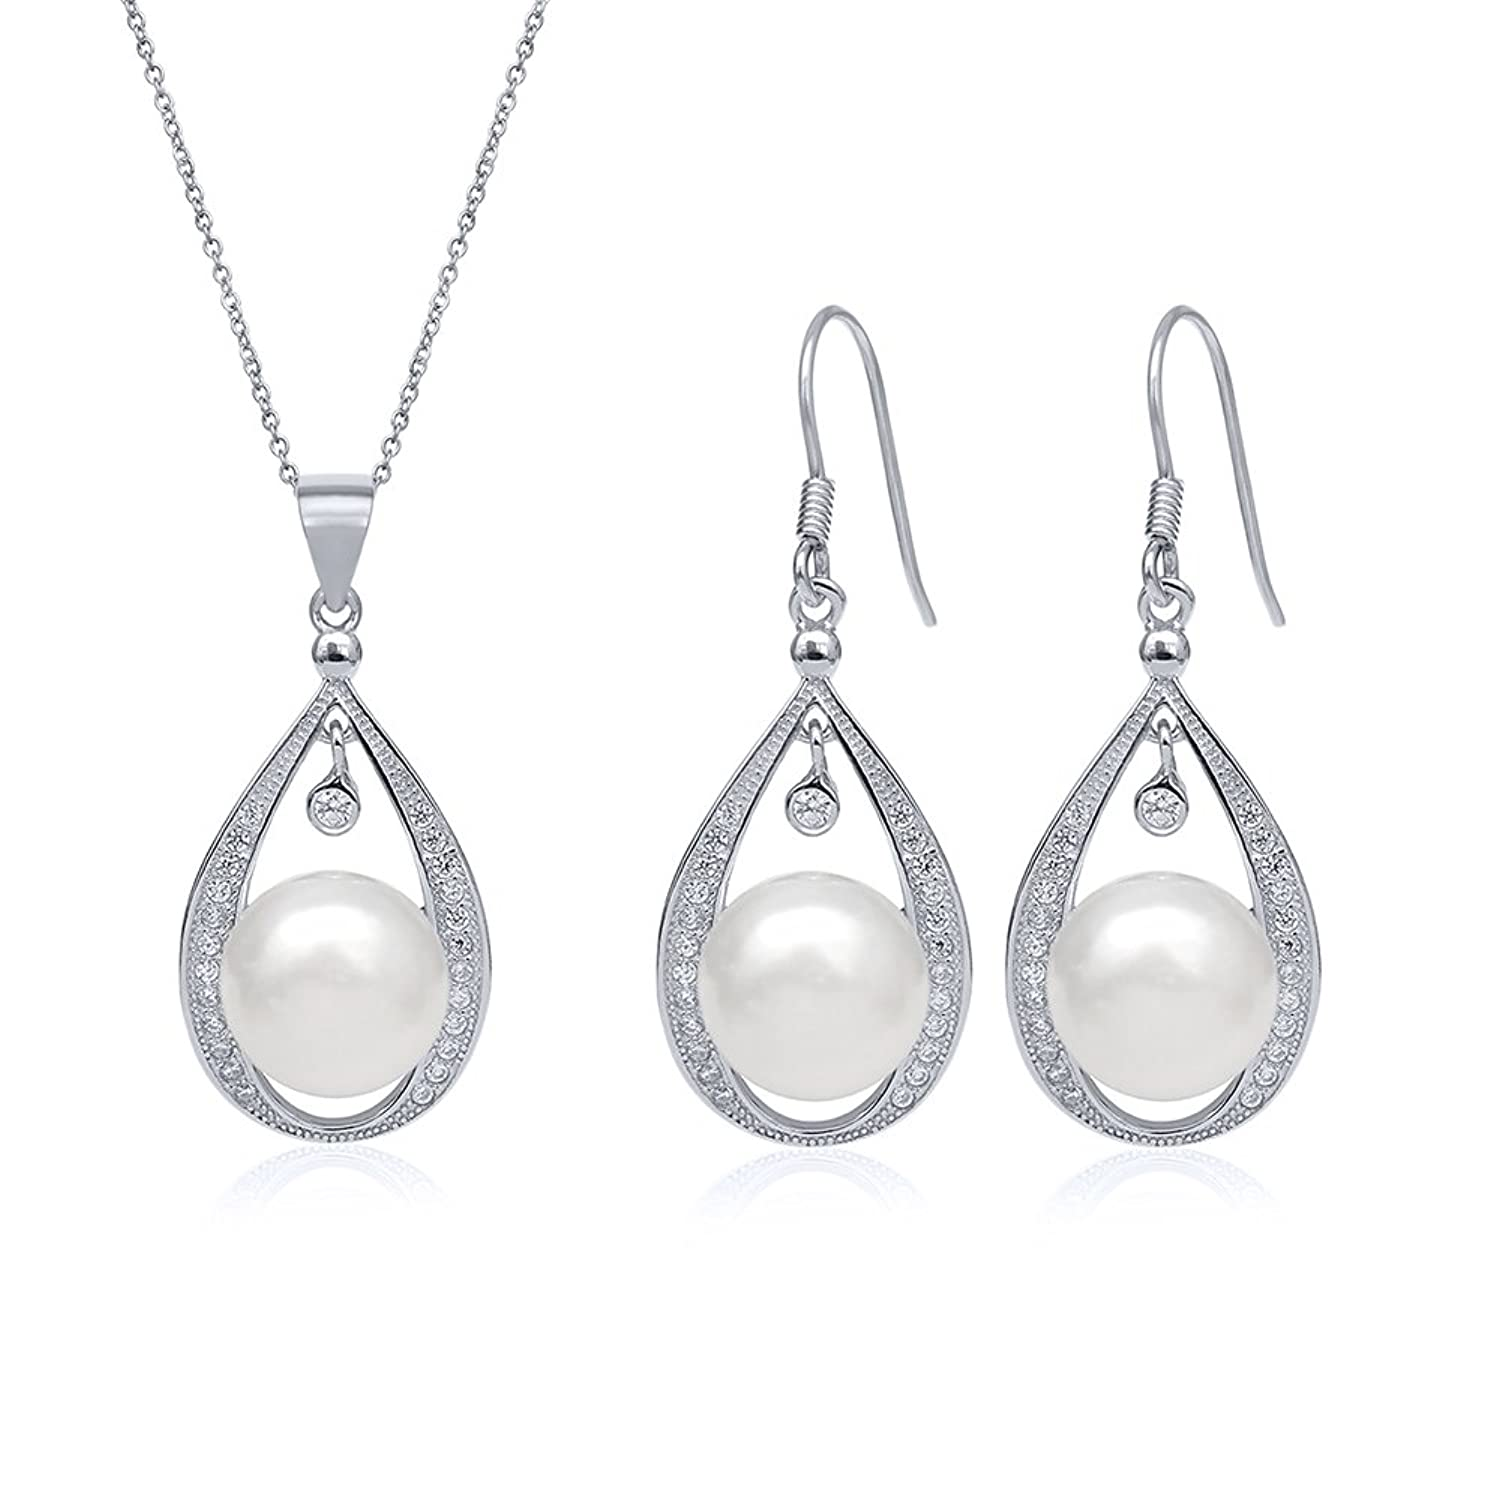 10.5mm Cultured Freshwater Pearl Sterling Silver Pendant Earrings Set With Chain